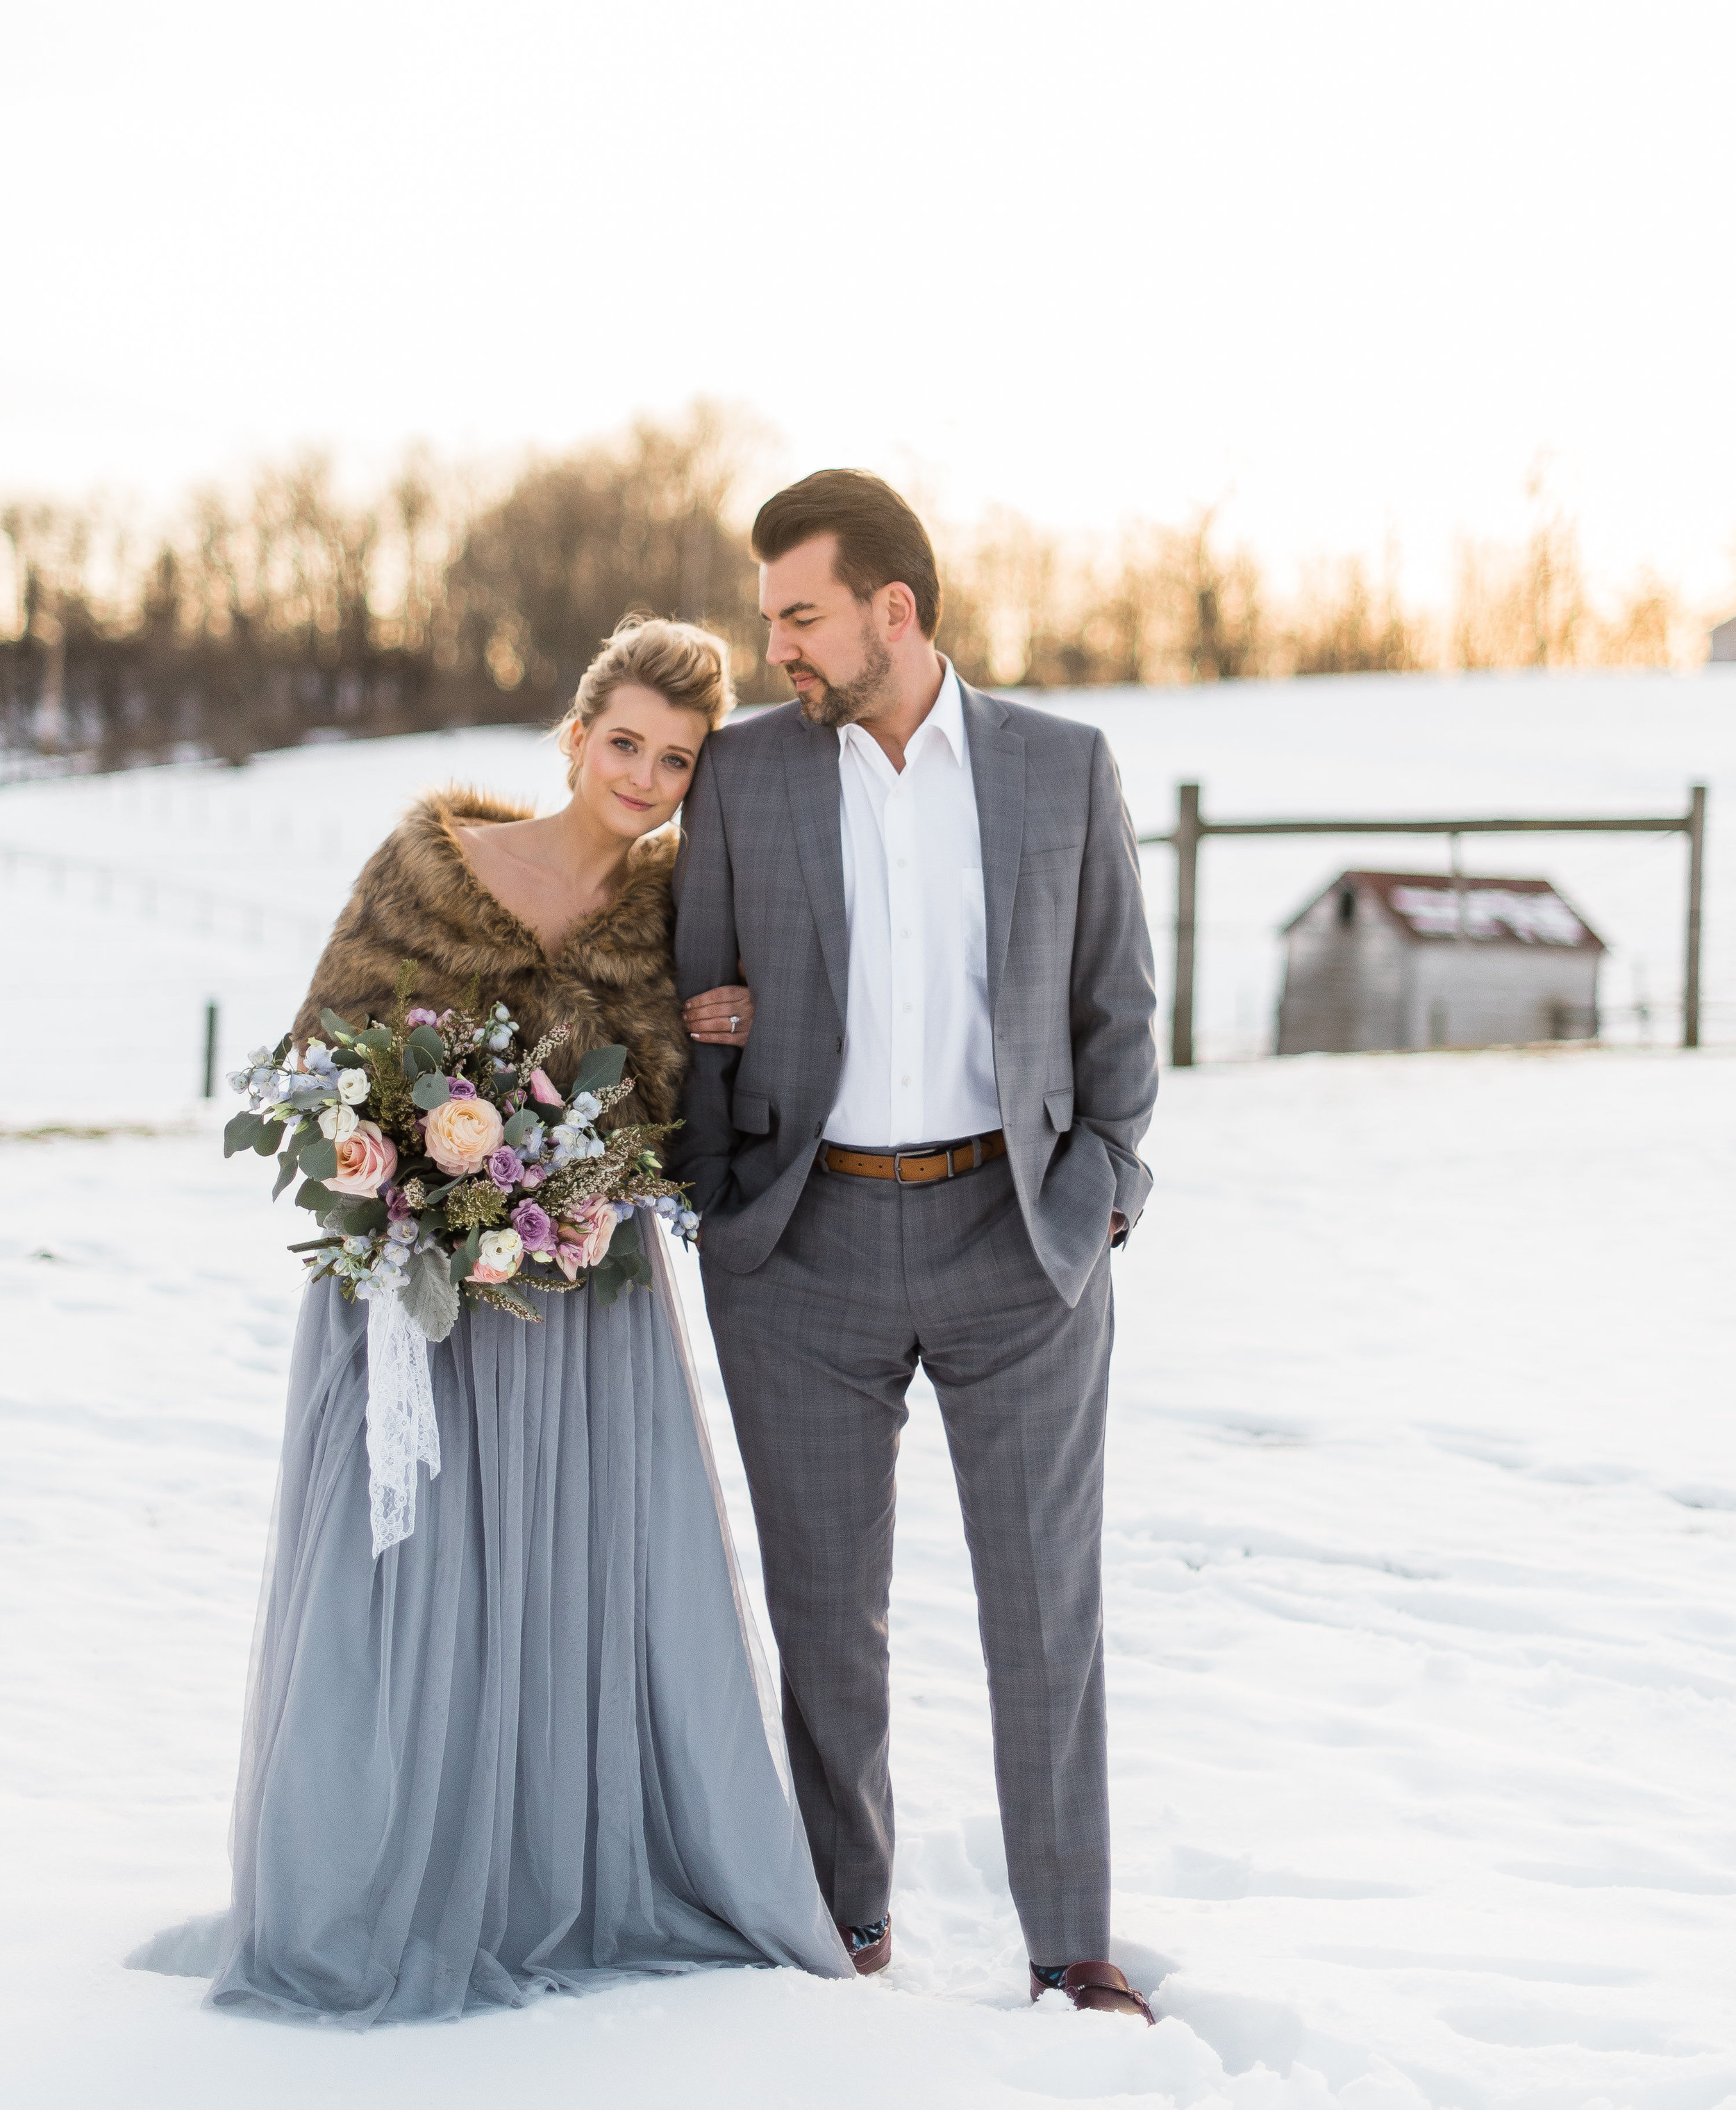 winter-romantic-snowy-pastel-pennsylvania-pittsburgh-wedding-styled-shoot-0024.jpg